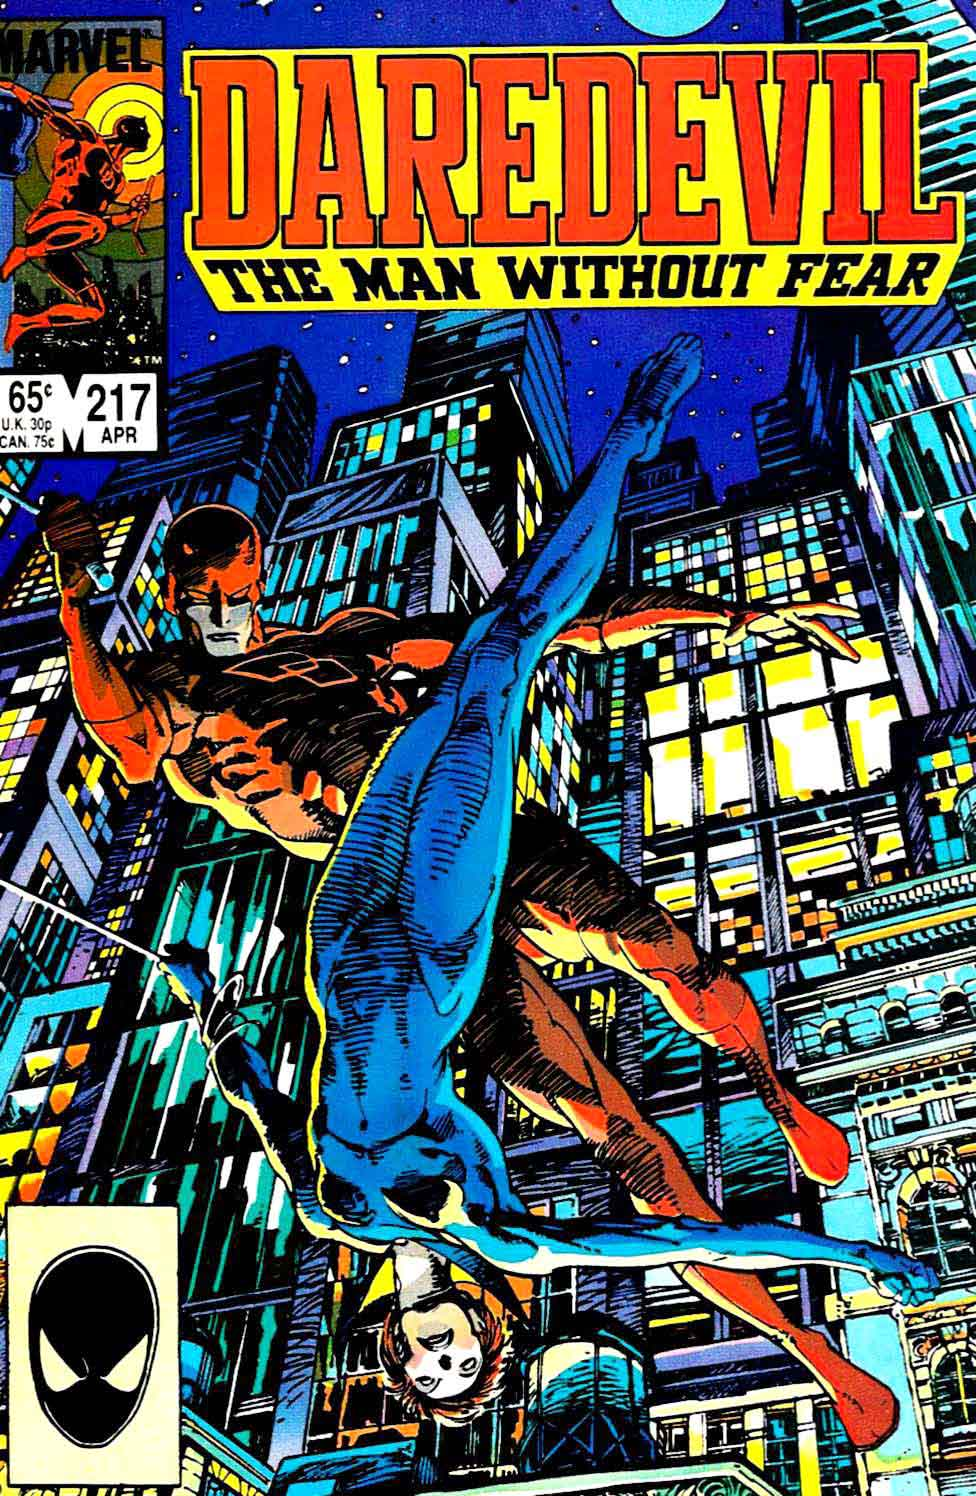 Marvel Comic Book Cover Art : Daredevil barry windsor smith cover pencil ink